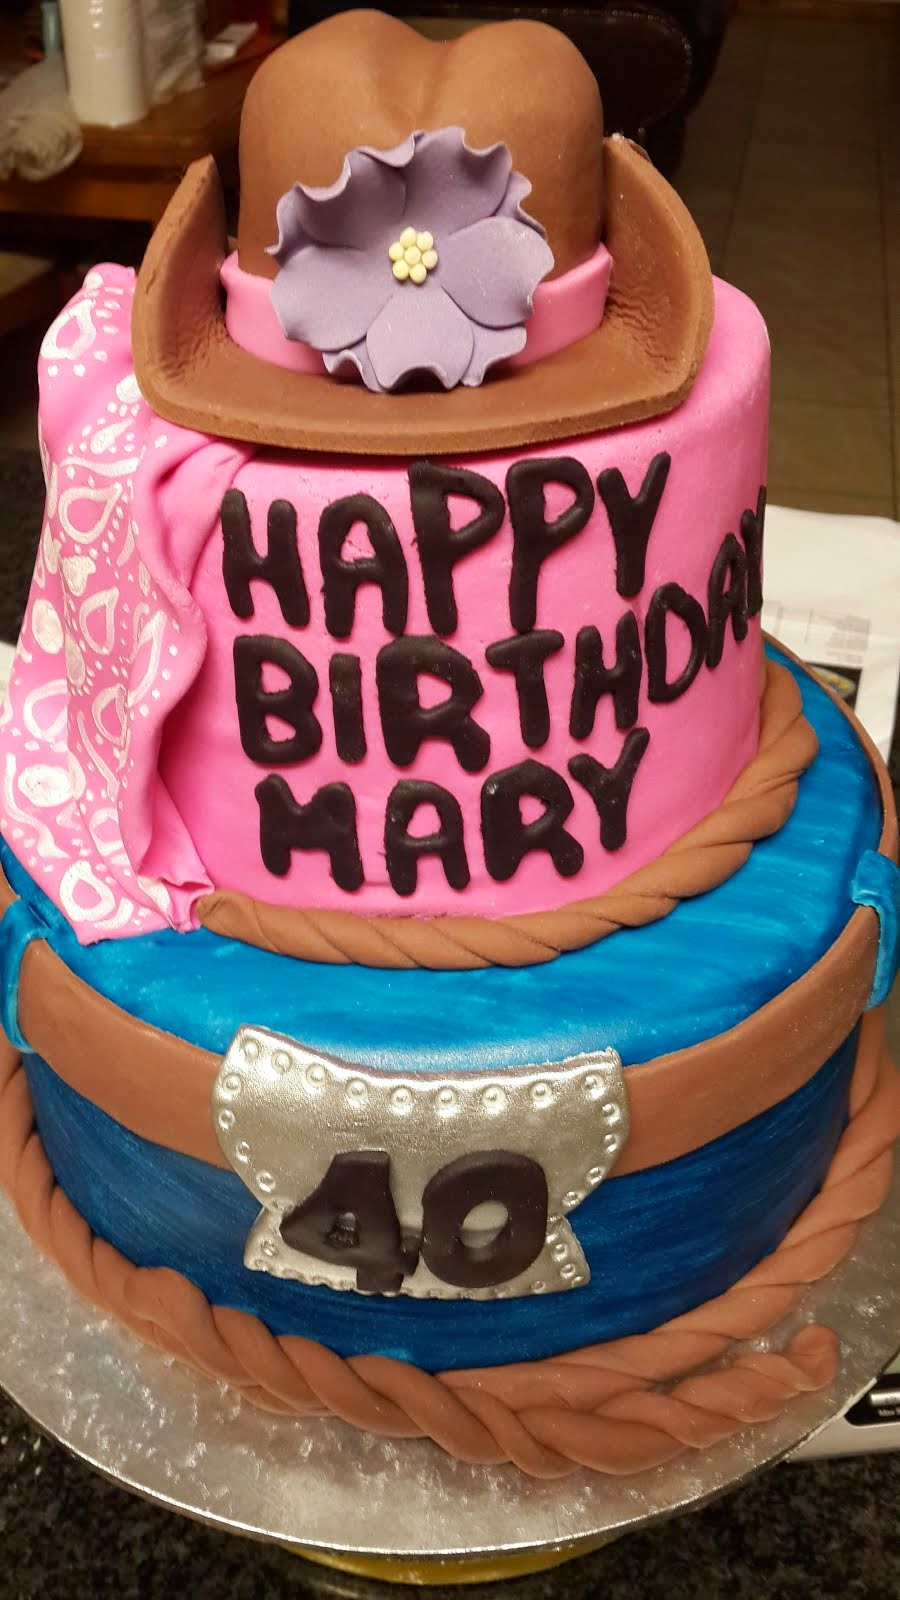 Mary's Cow Girl Cake